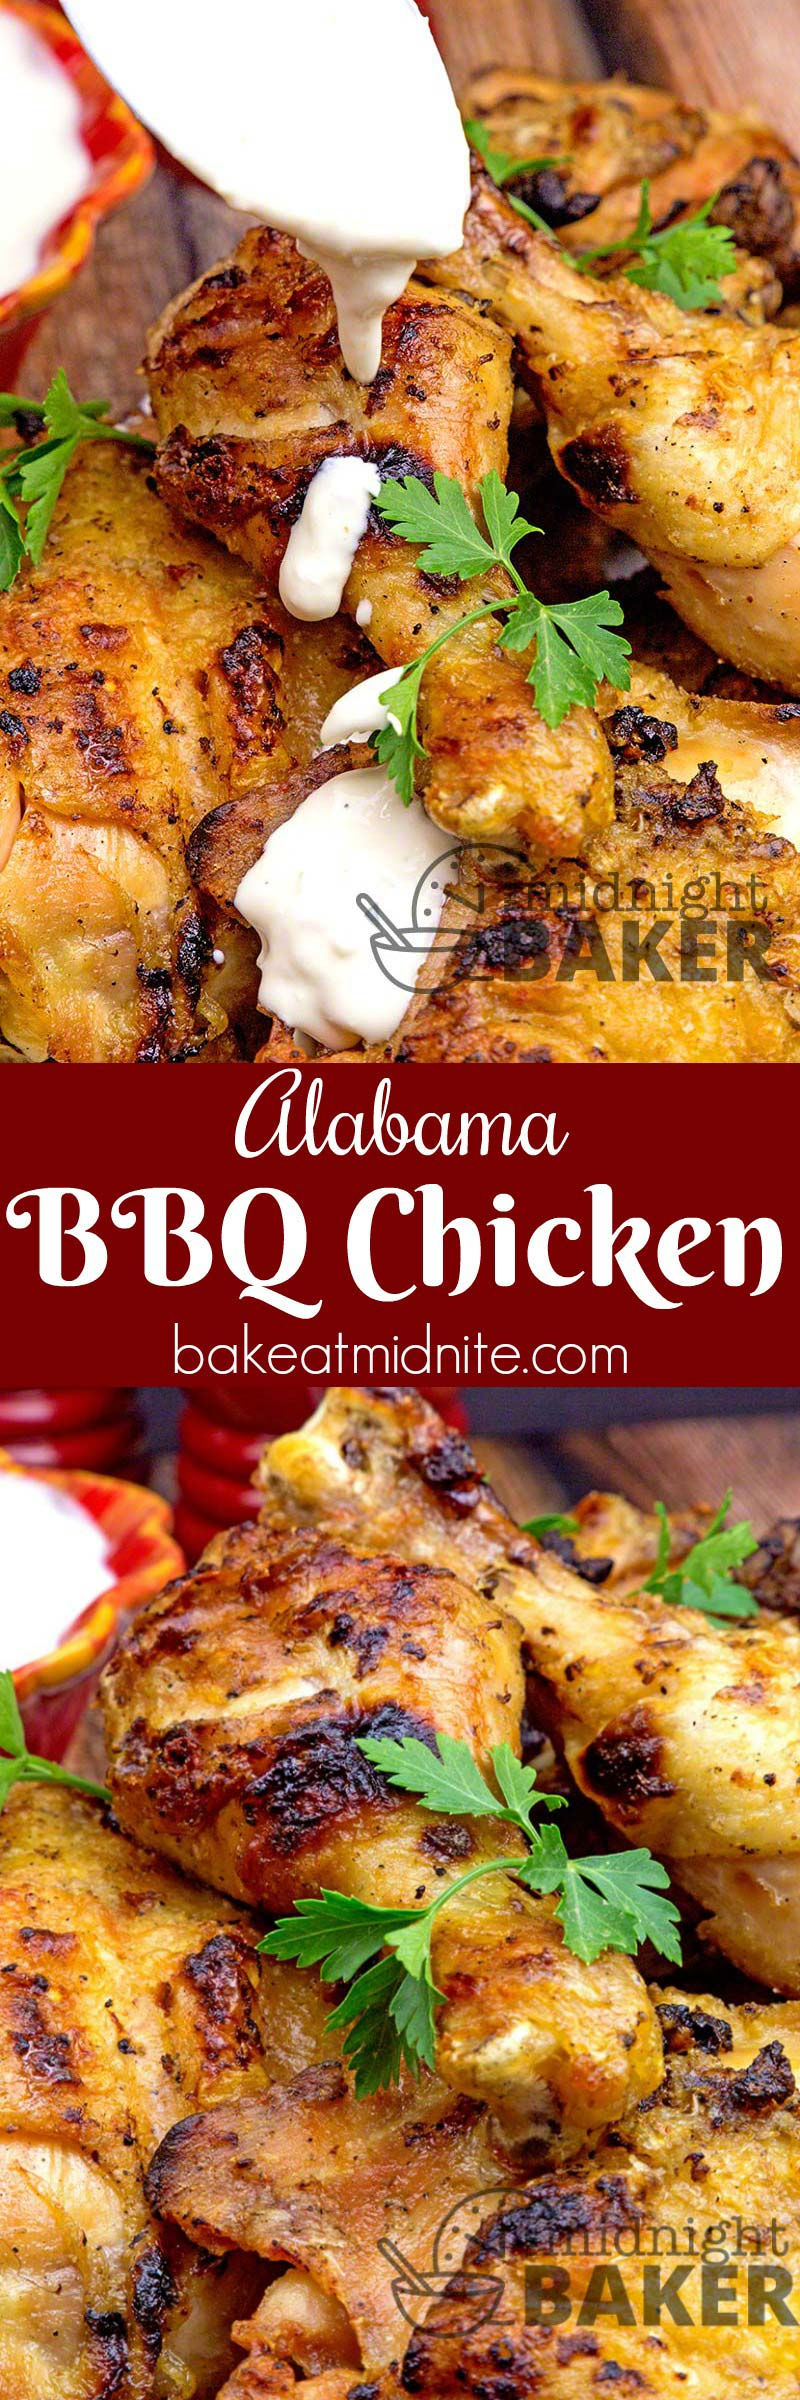 Grilled chicken with great Alabama white BBQ sauce. YUMMY